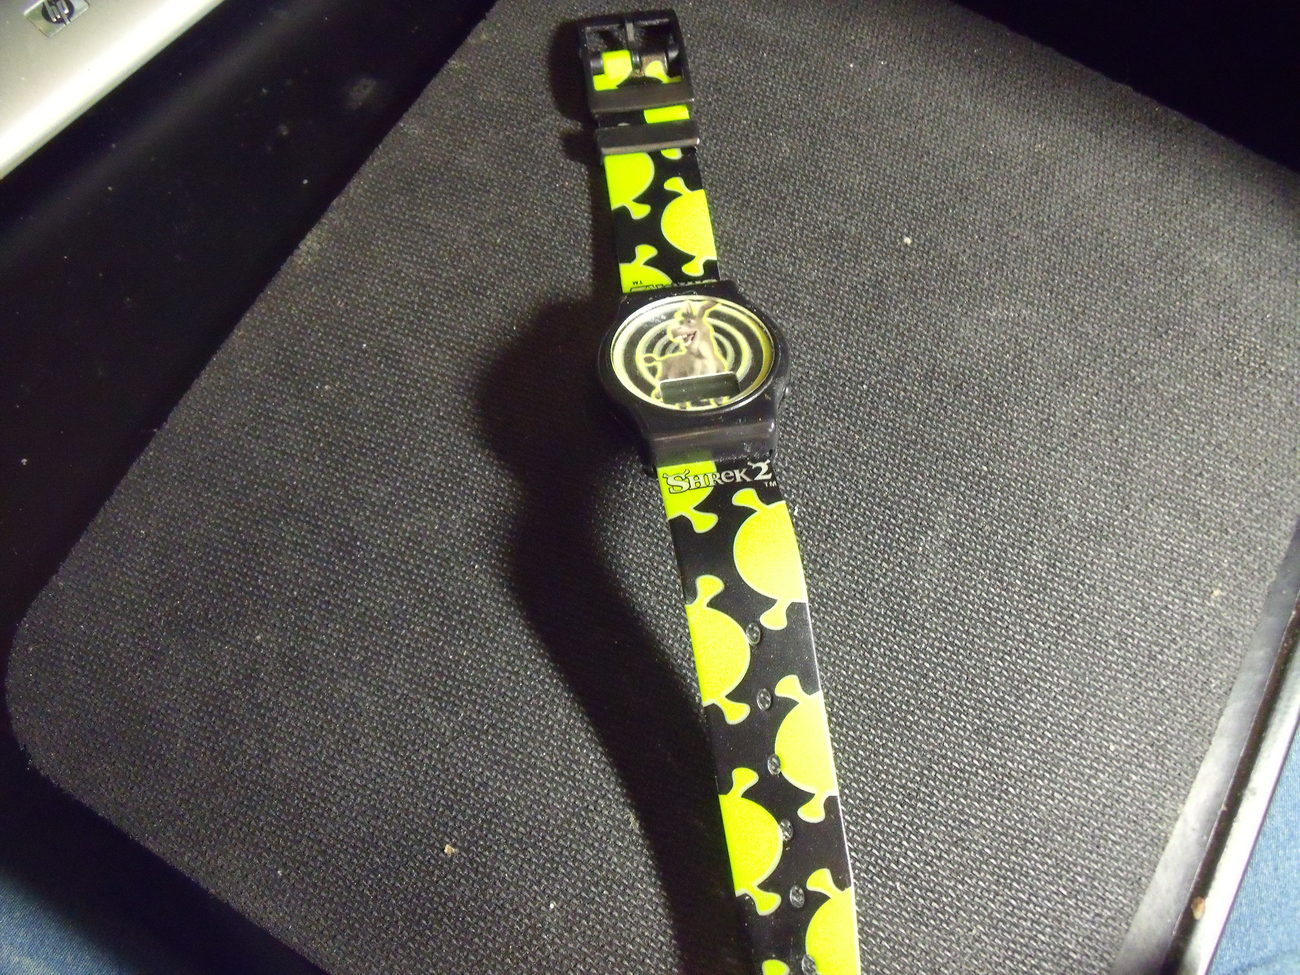 Shrek 2 Watch from General Mills with Donkey and 50 similar items